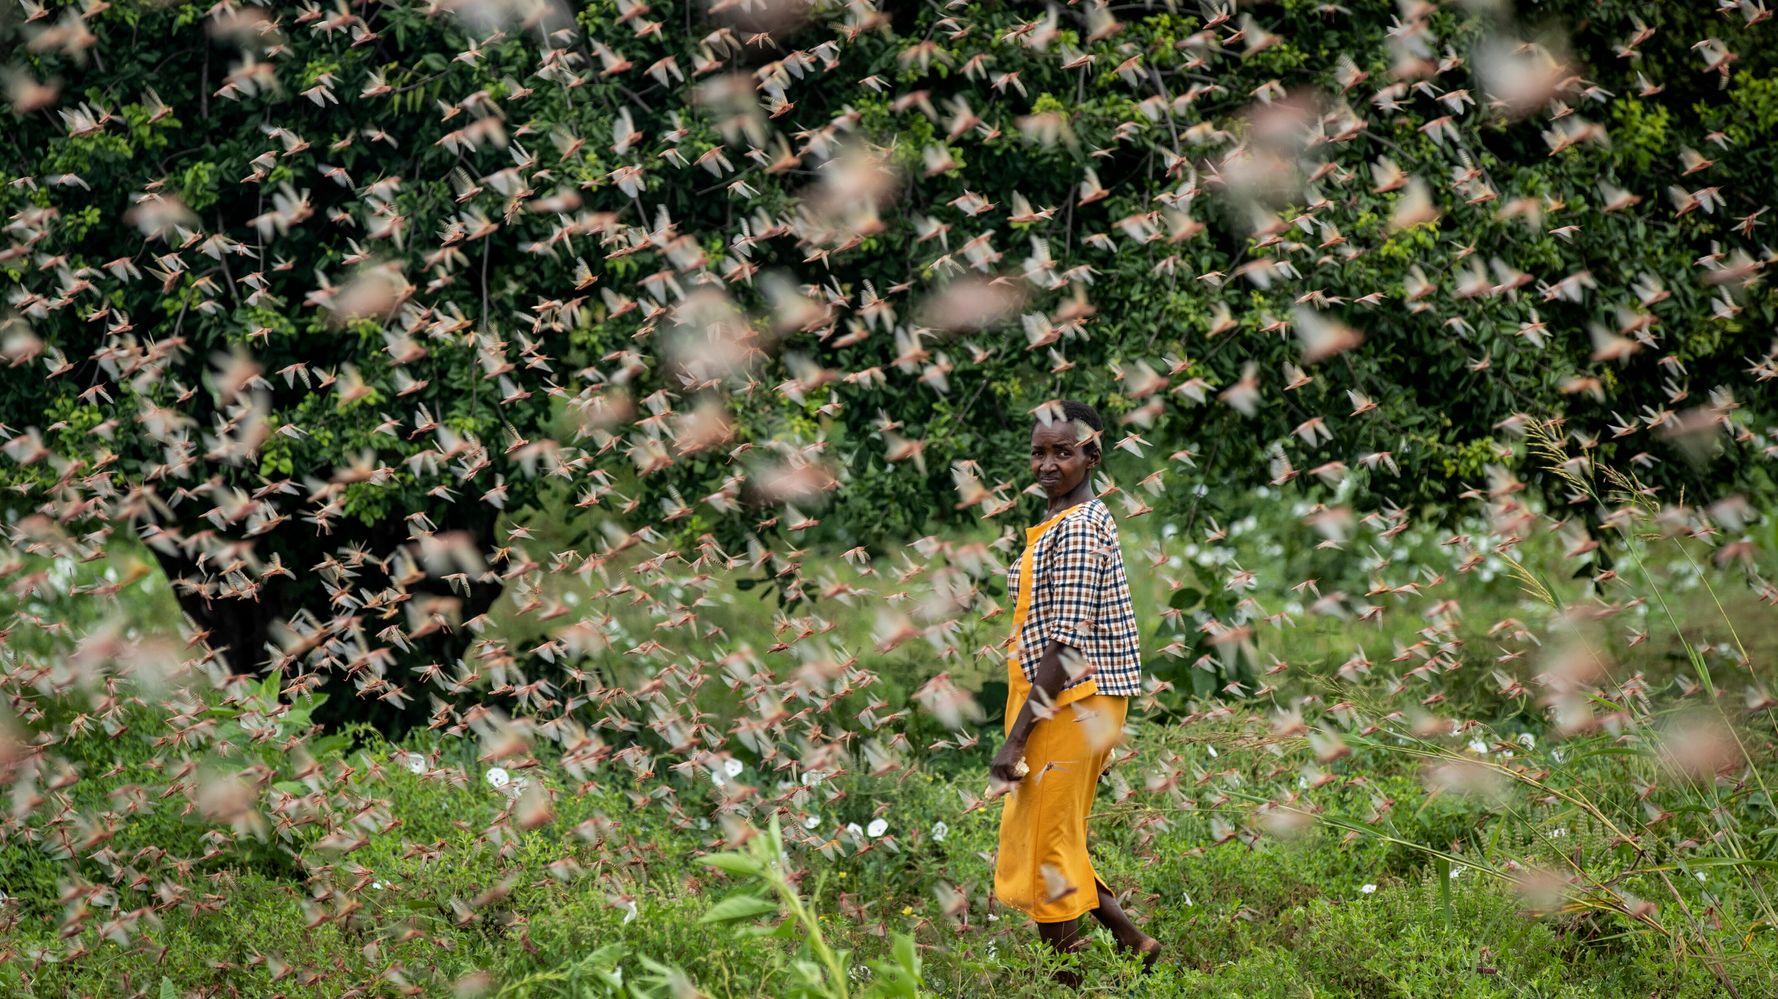 'This Is Huge': Locust Swarms In Africa Are Worst In Decades